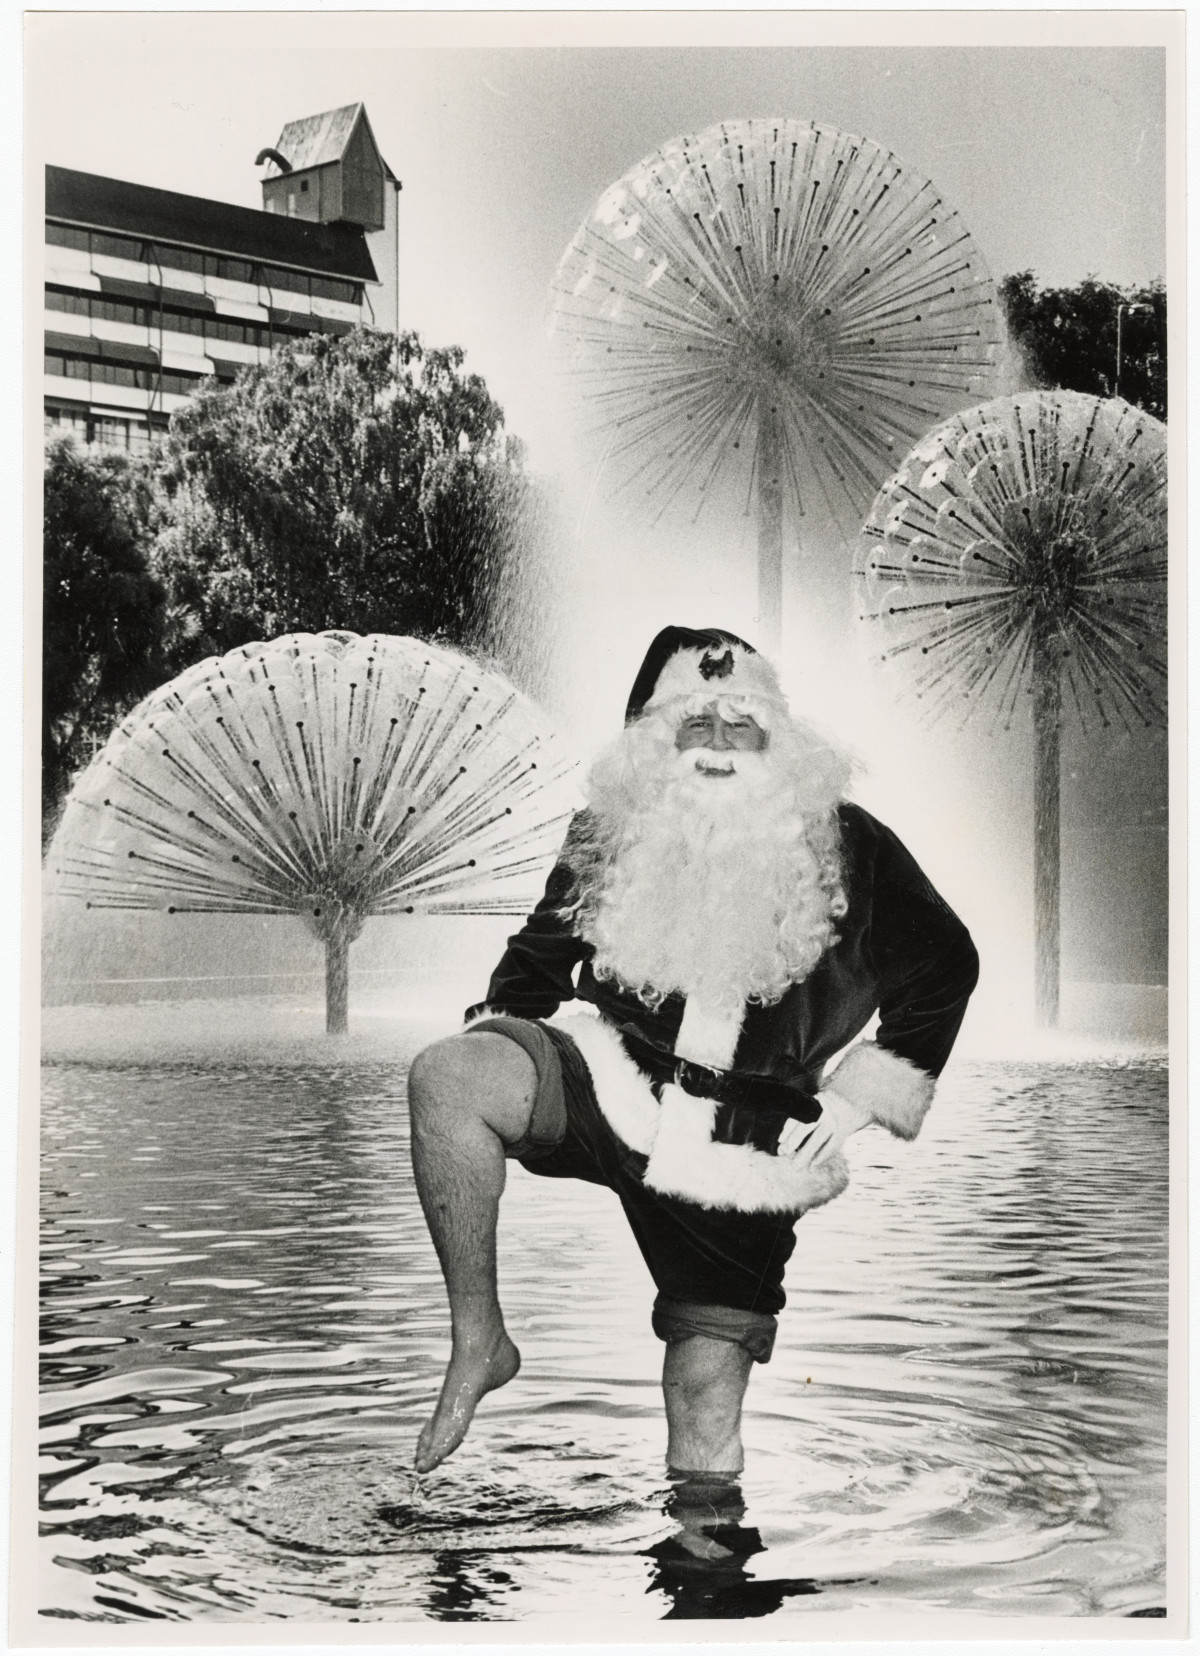 Black and white photo of a man dressed as Santa Claus standing in a fountain, 1984